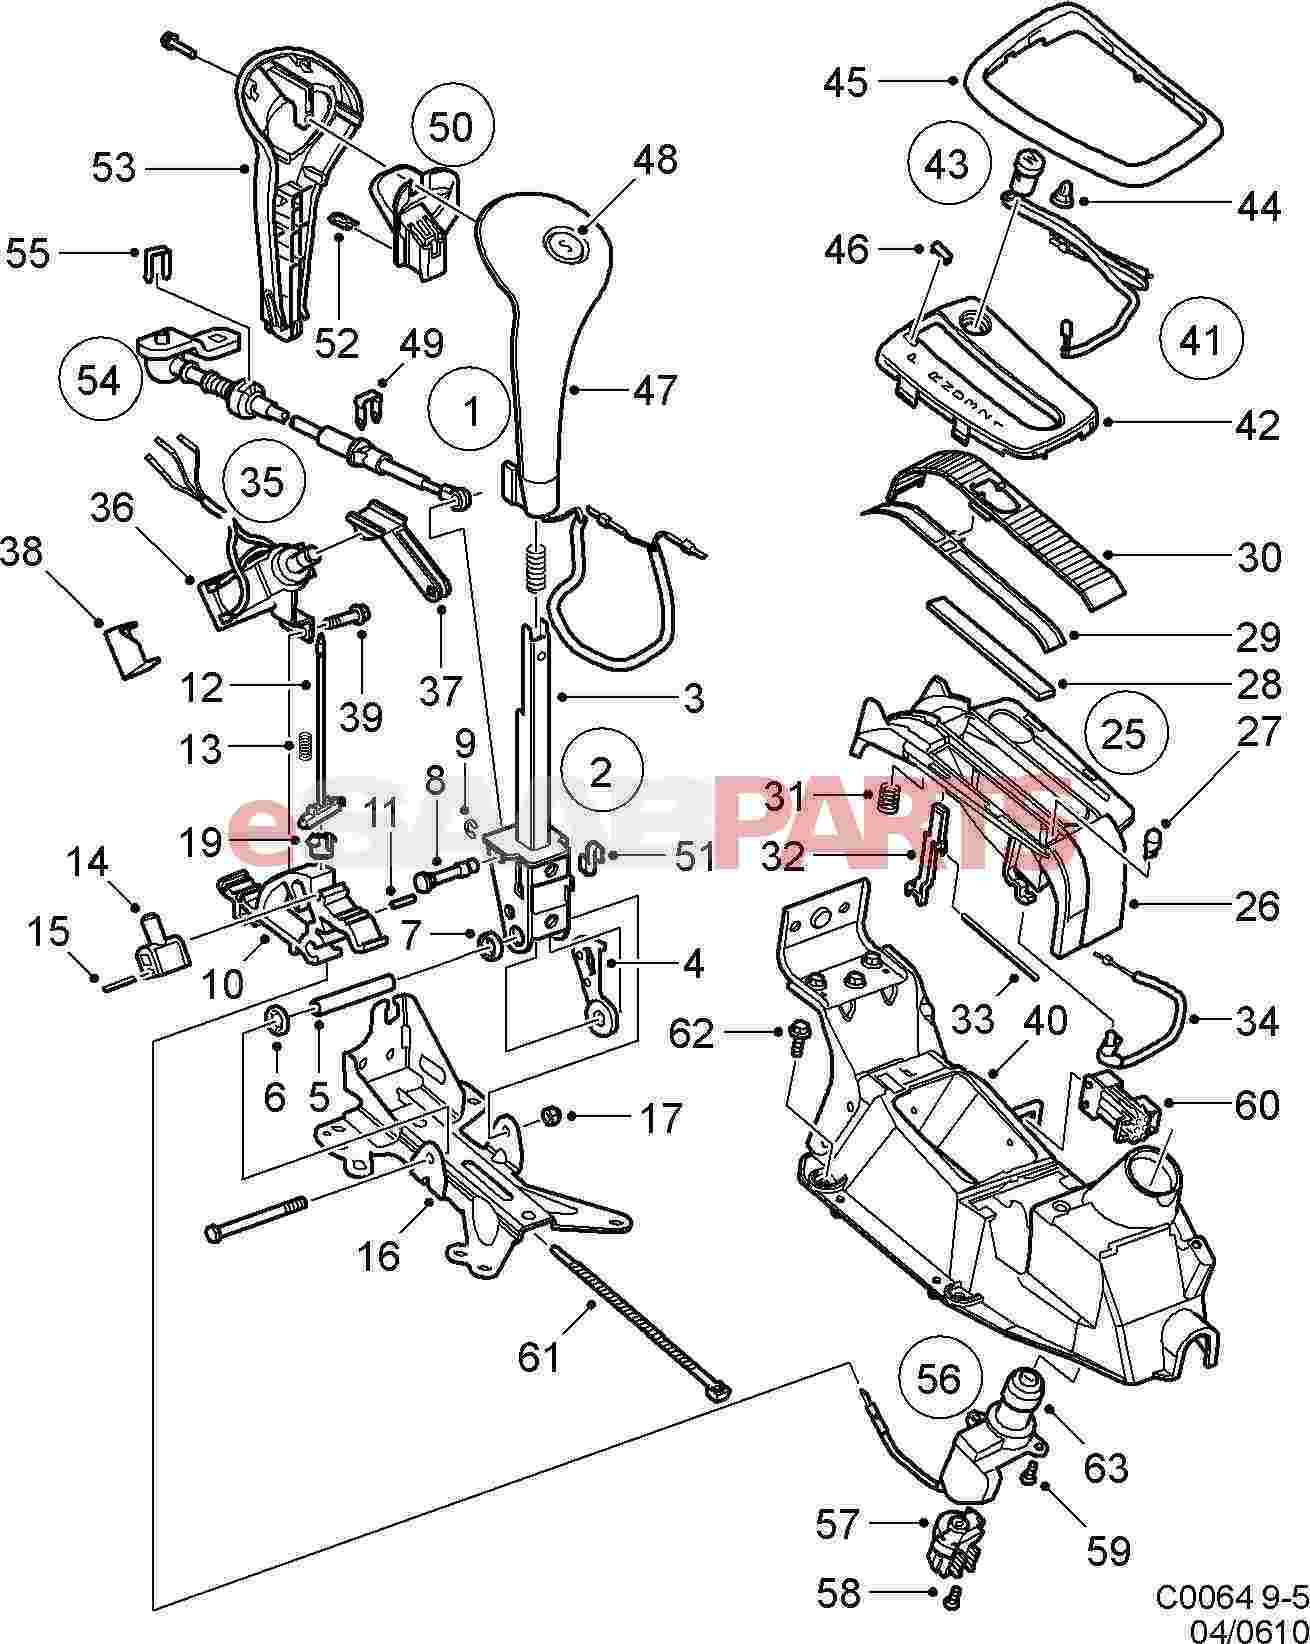 Diagram  Renault Clio Gearbox Diagram Full Version Hd Quality Gearbox Diagram